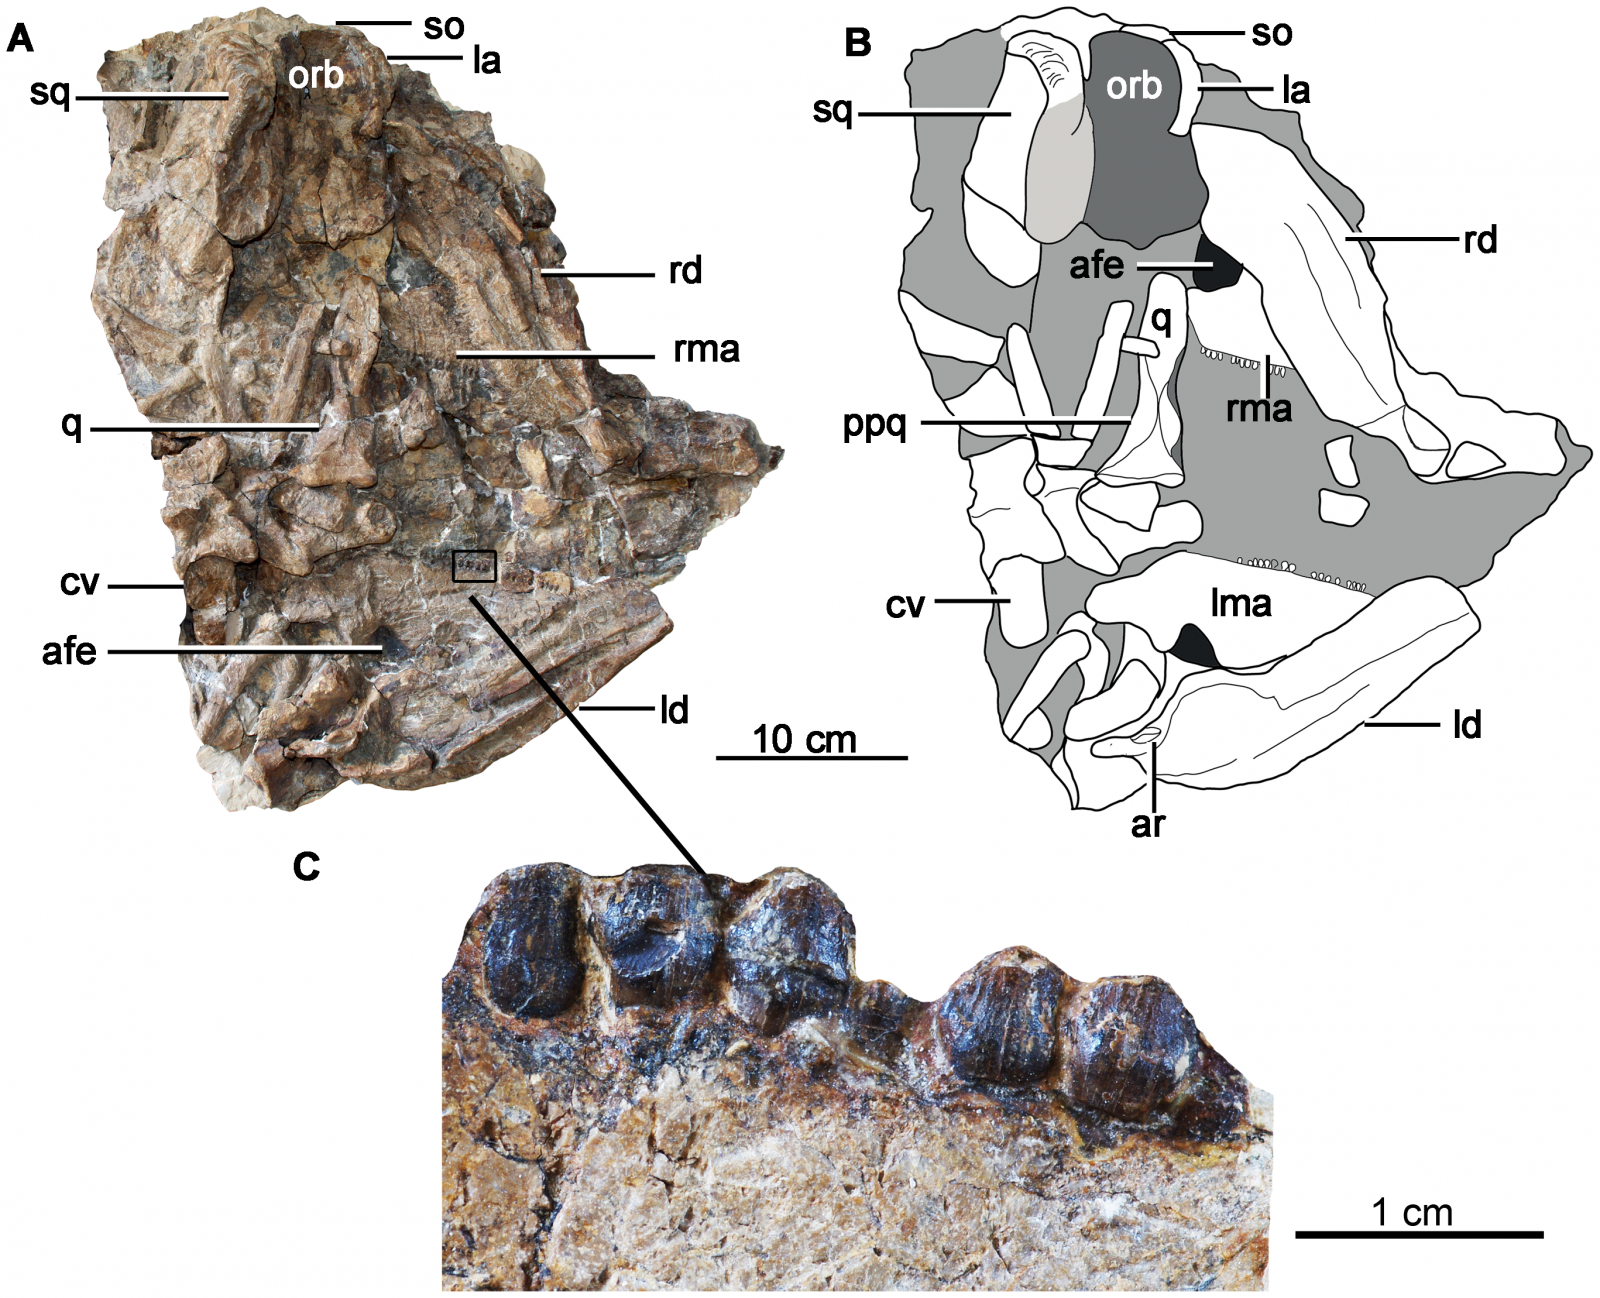 Holotype skull and mandibles of Chuanqilong chaoyangensis